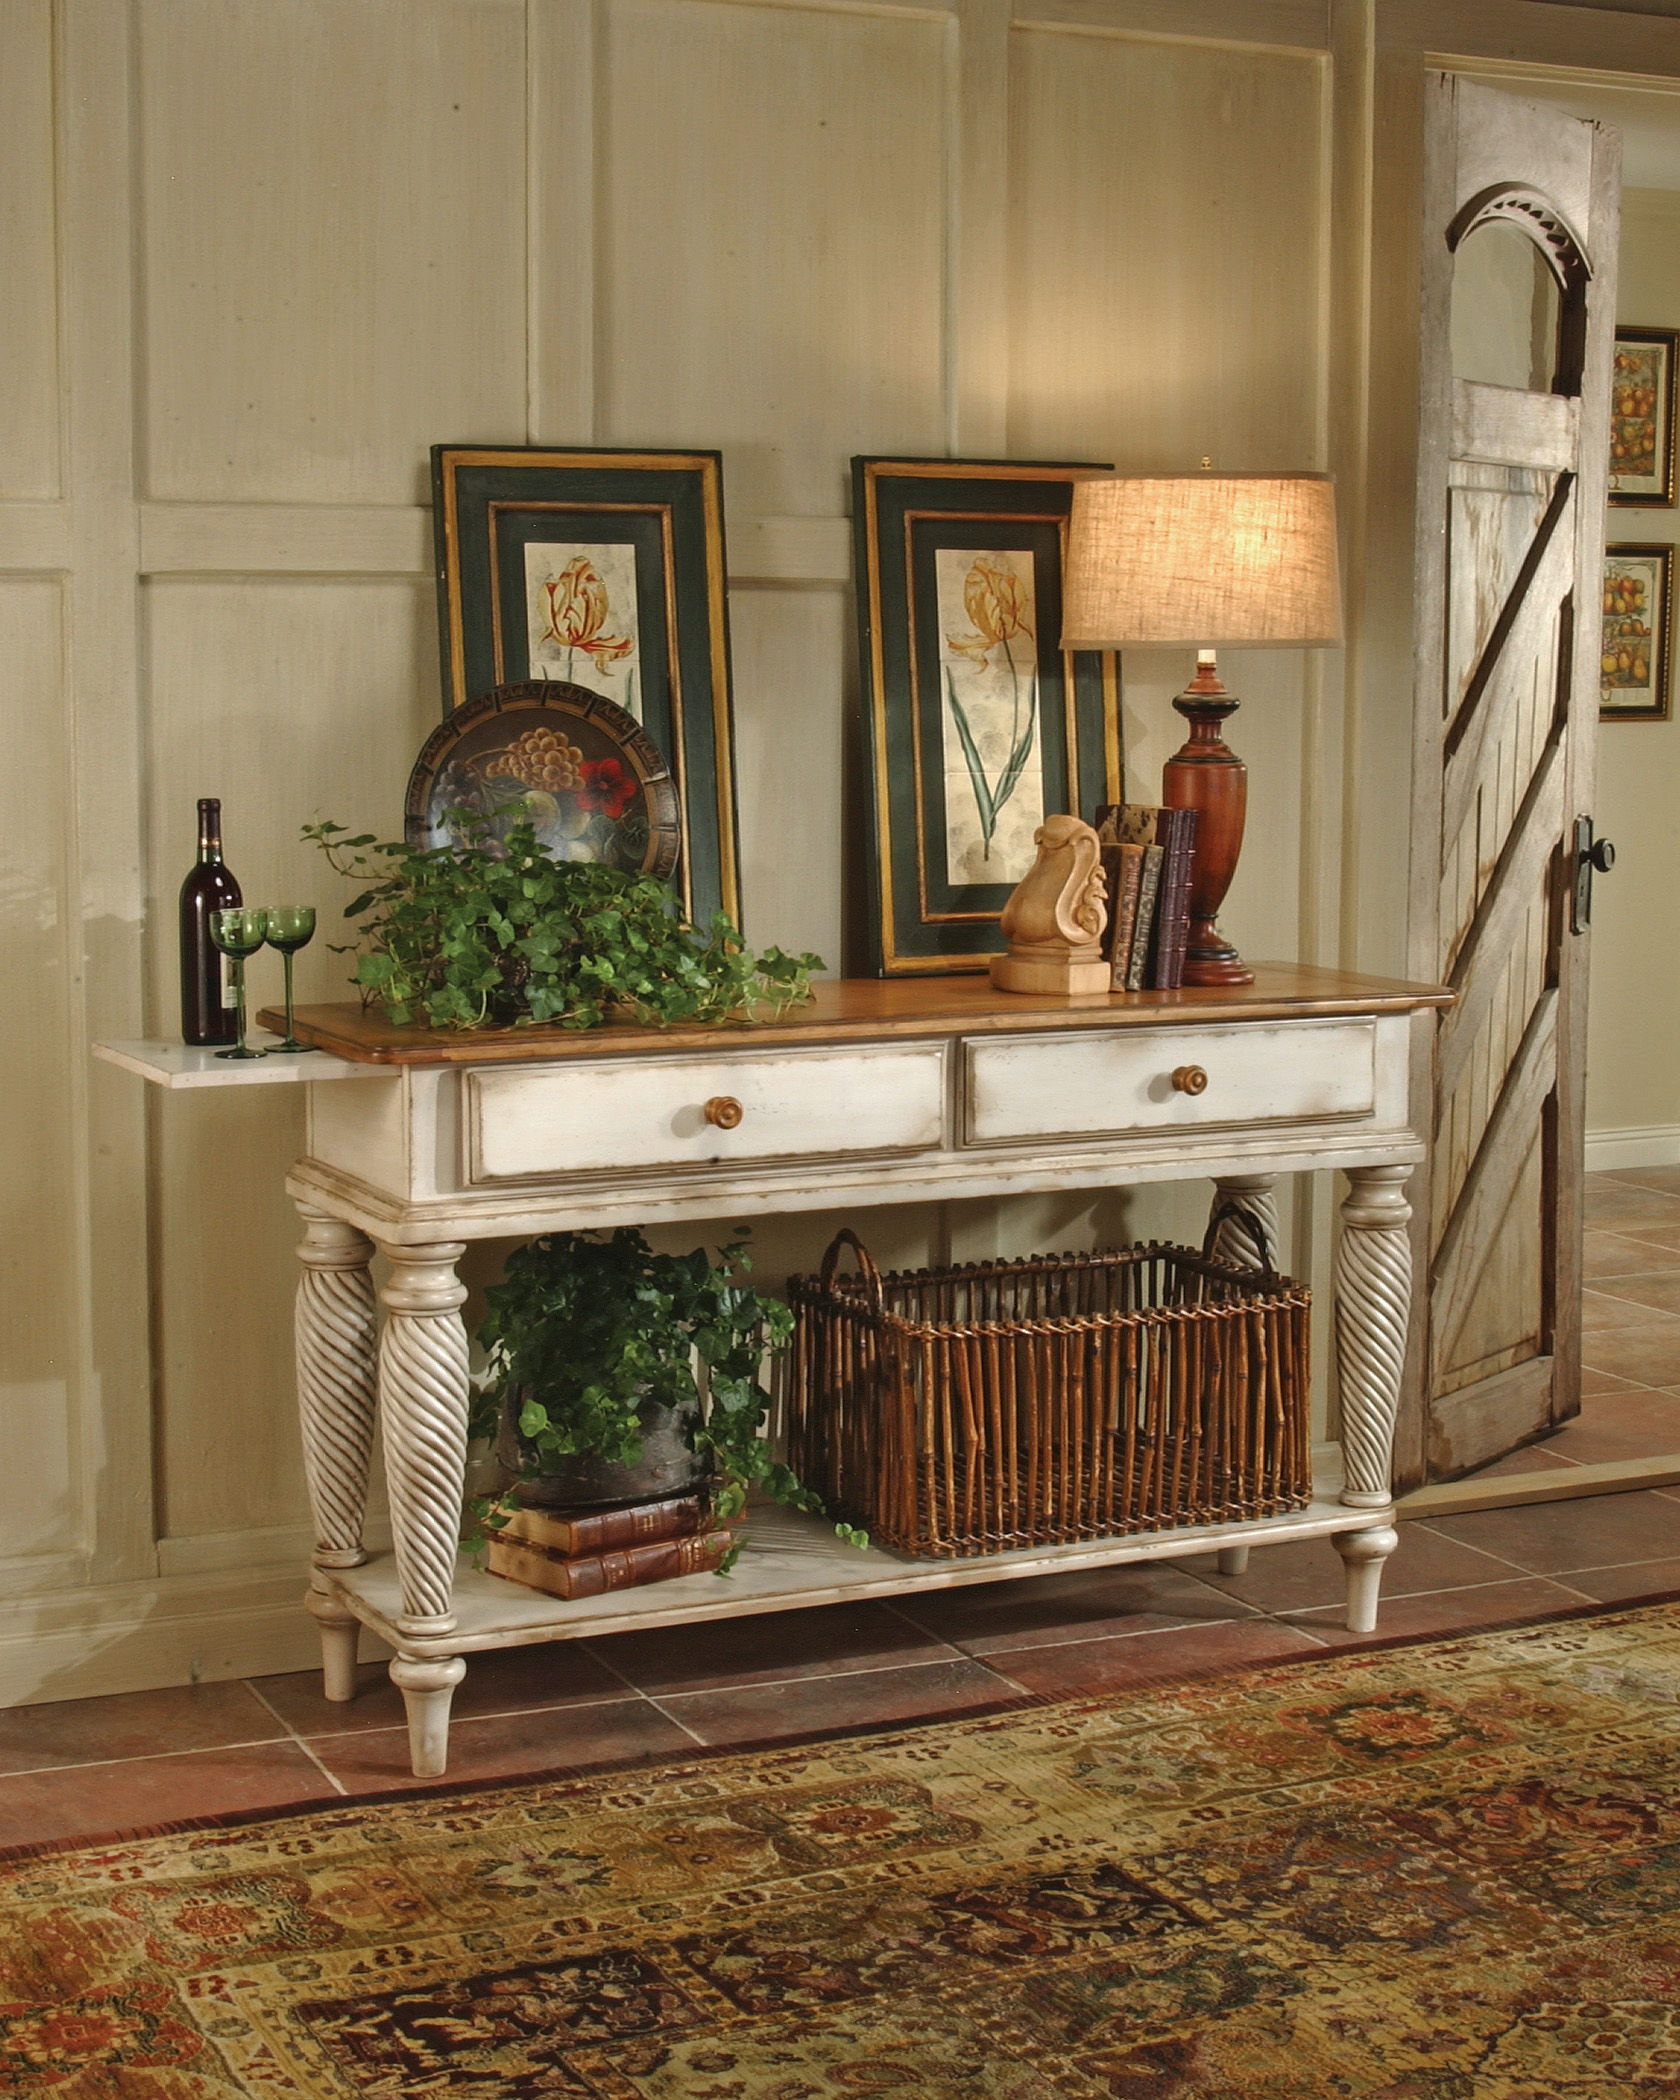 Hillsdale Furniture Living Room Wilshire Sideboard Legs 4508 857   Carol  House Furniture   Maryland Heights And Valley Park, MO